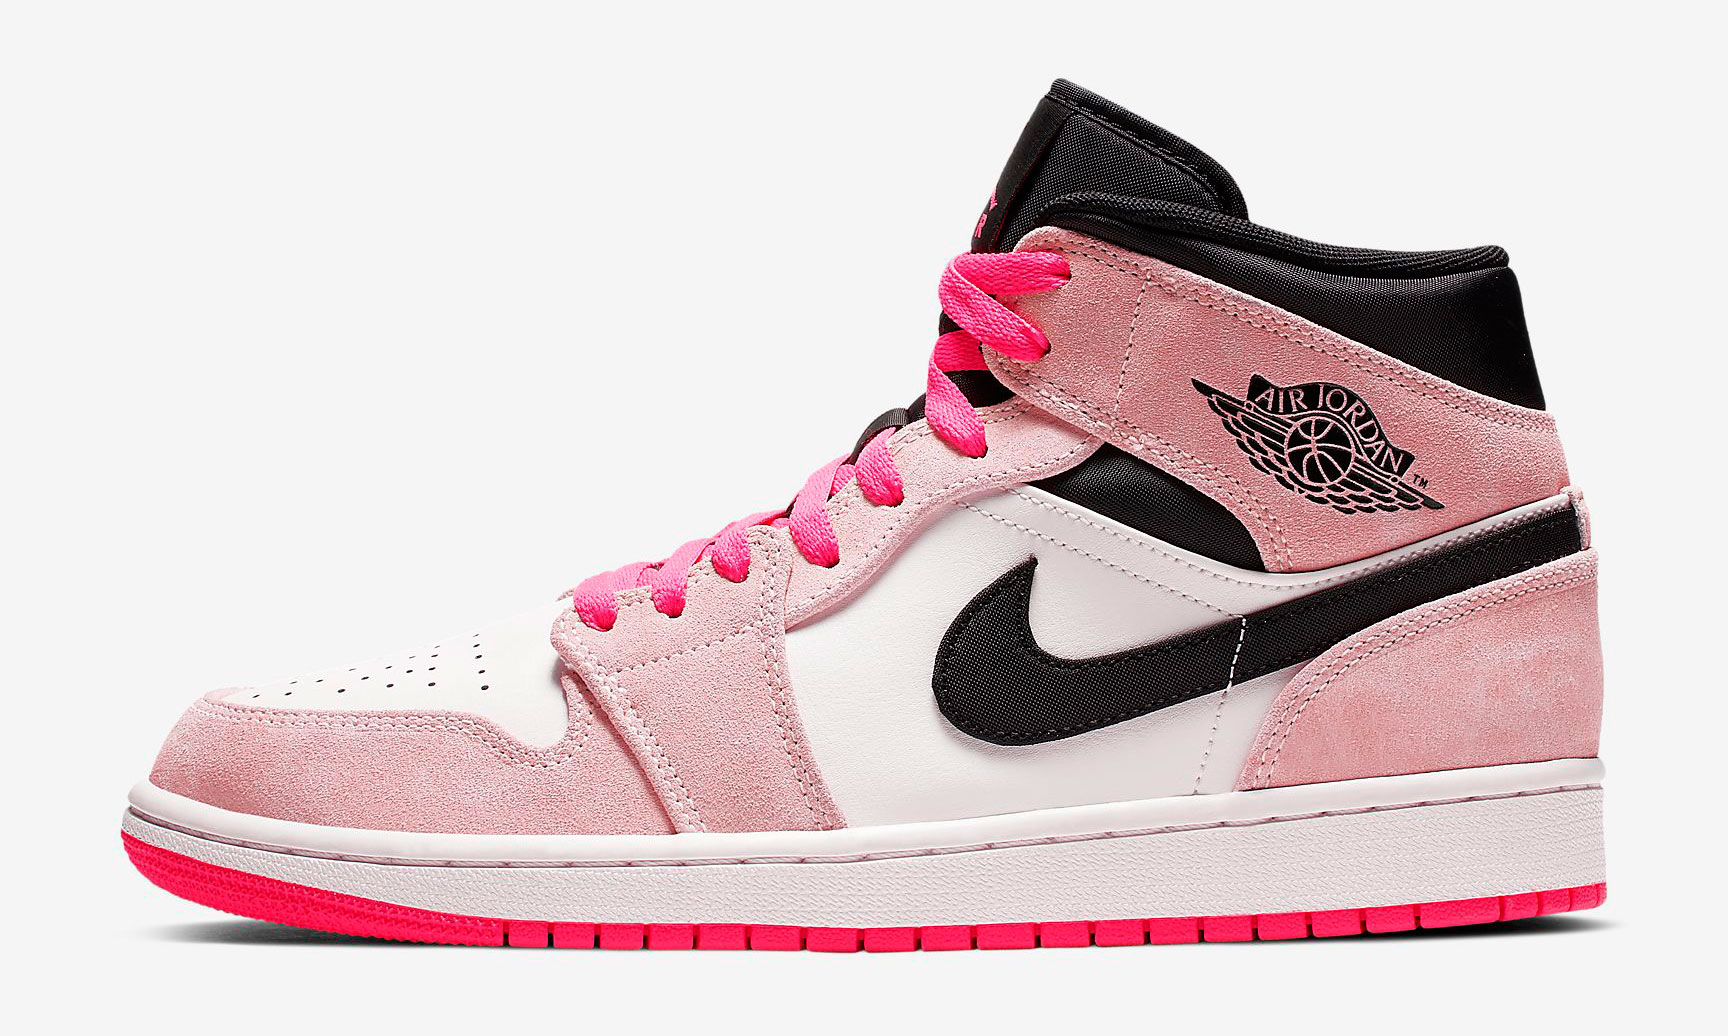 air-jordan-1-mid-crimson-tint-hyper-pink-clothing-outfit-match